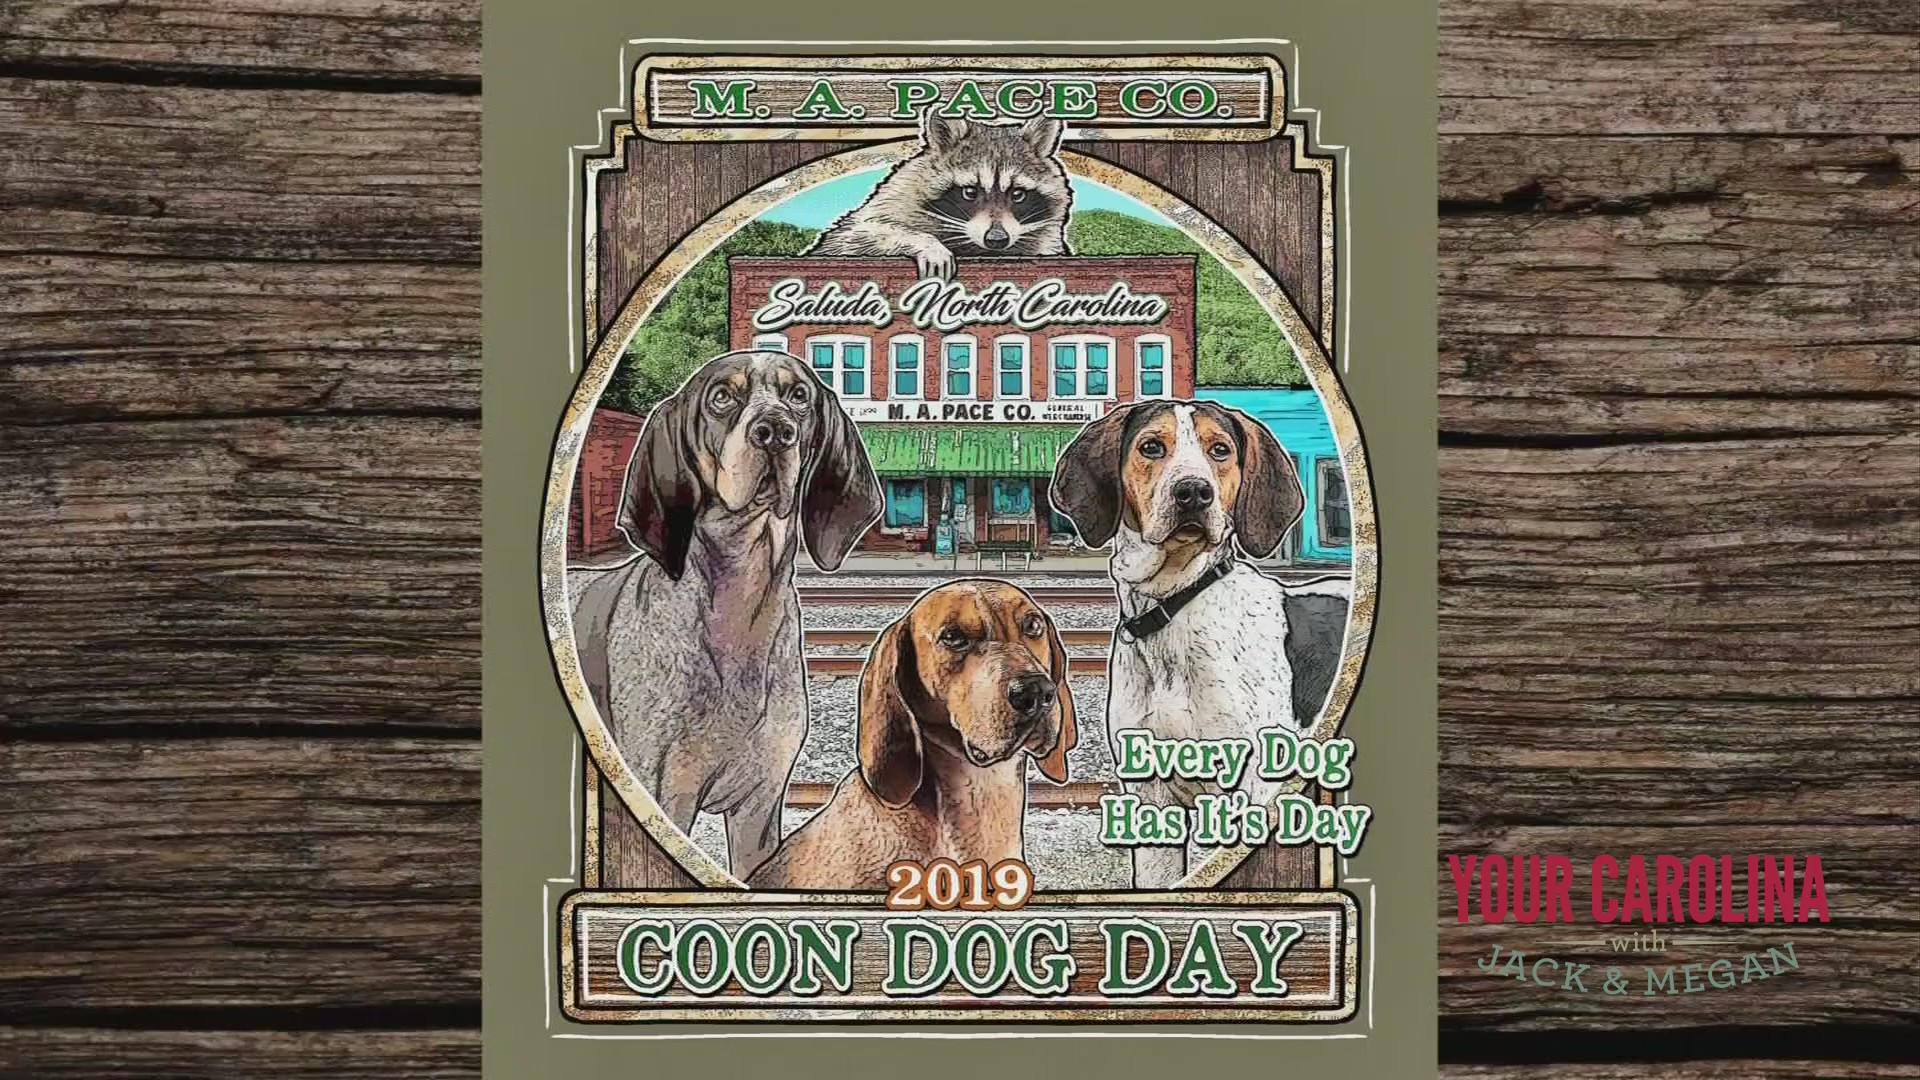 Coon Dog Day This Weekend